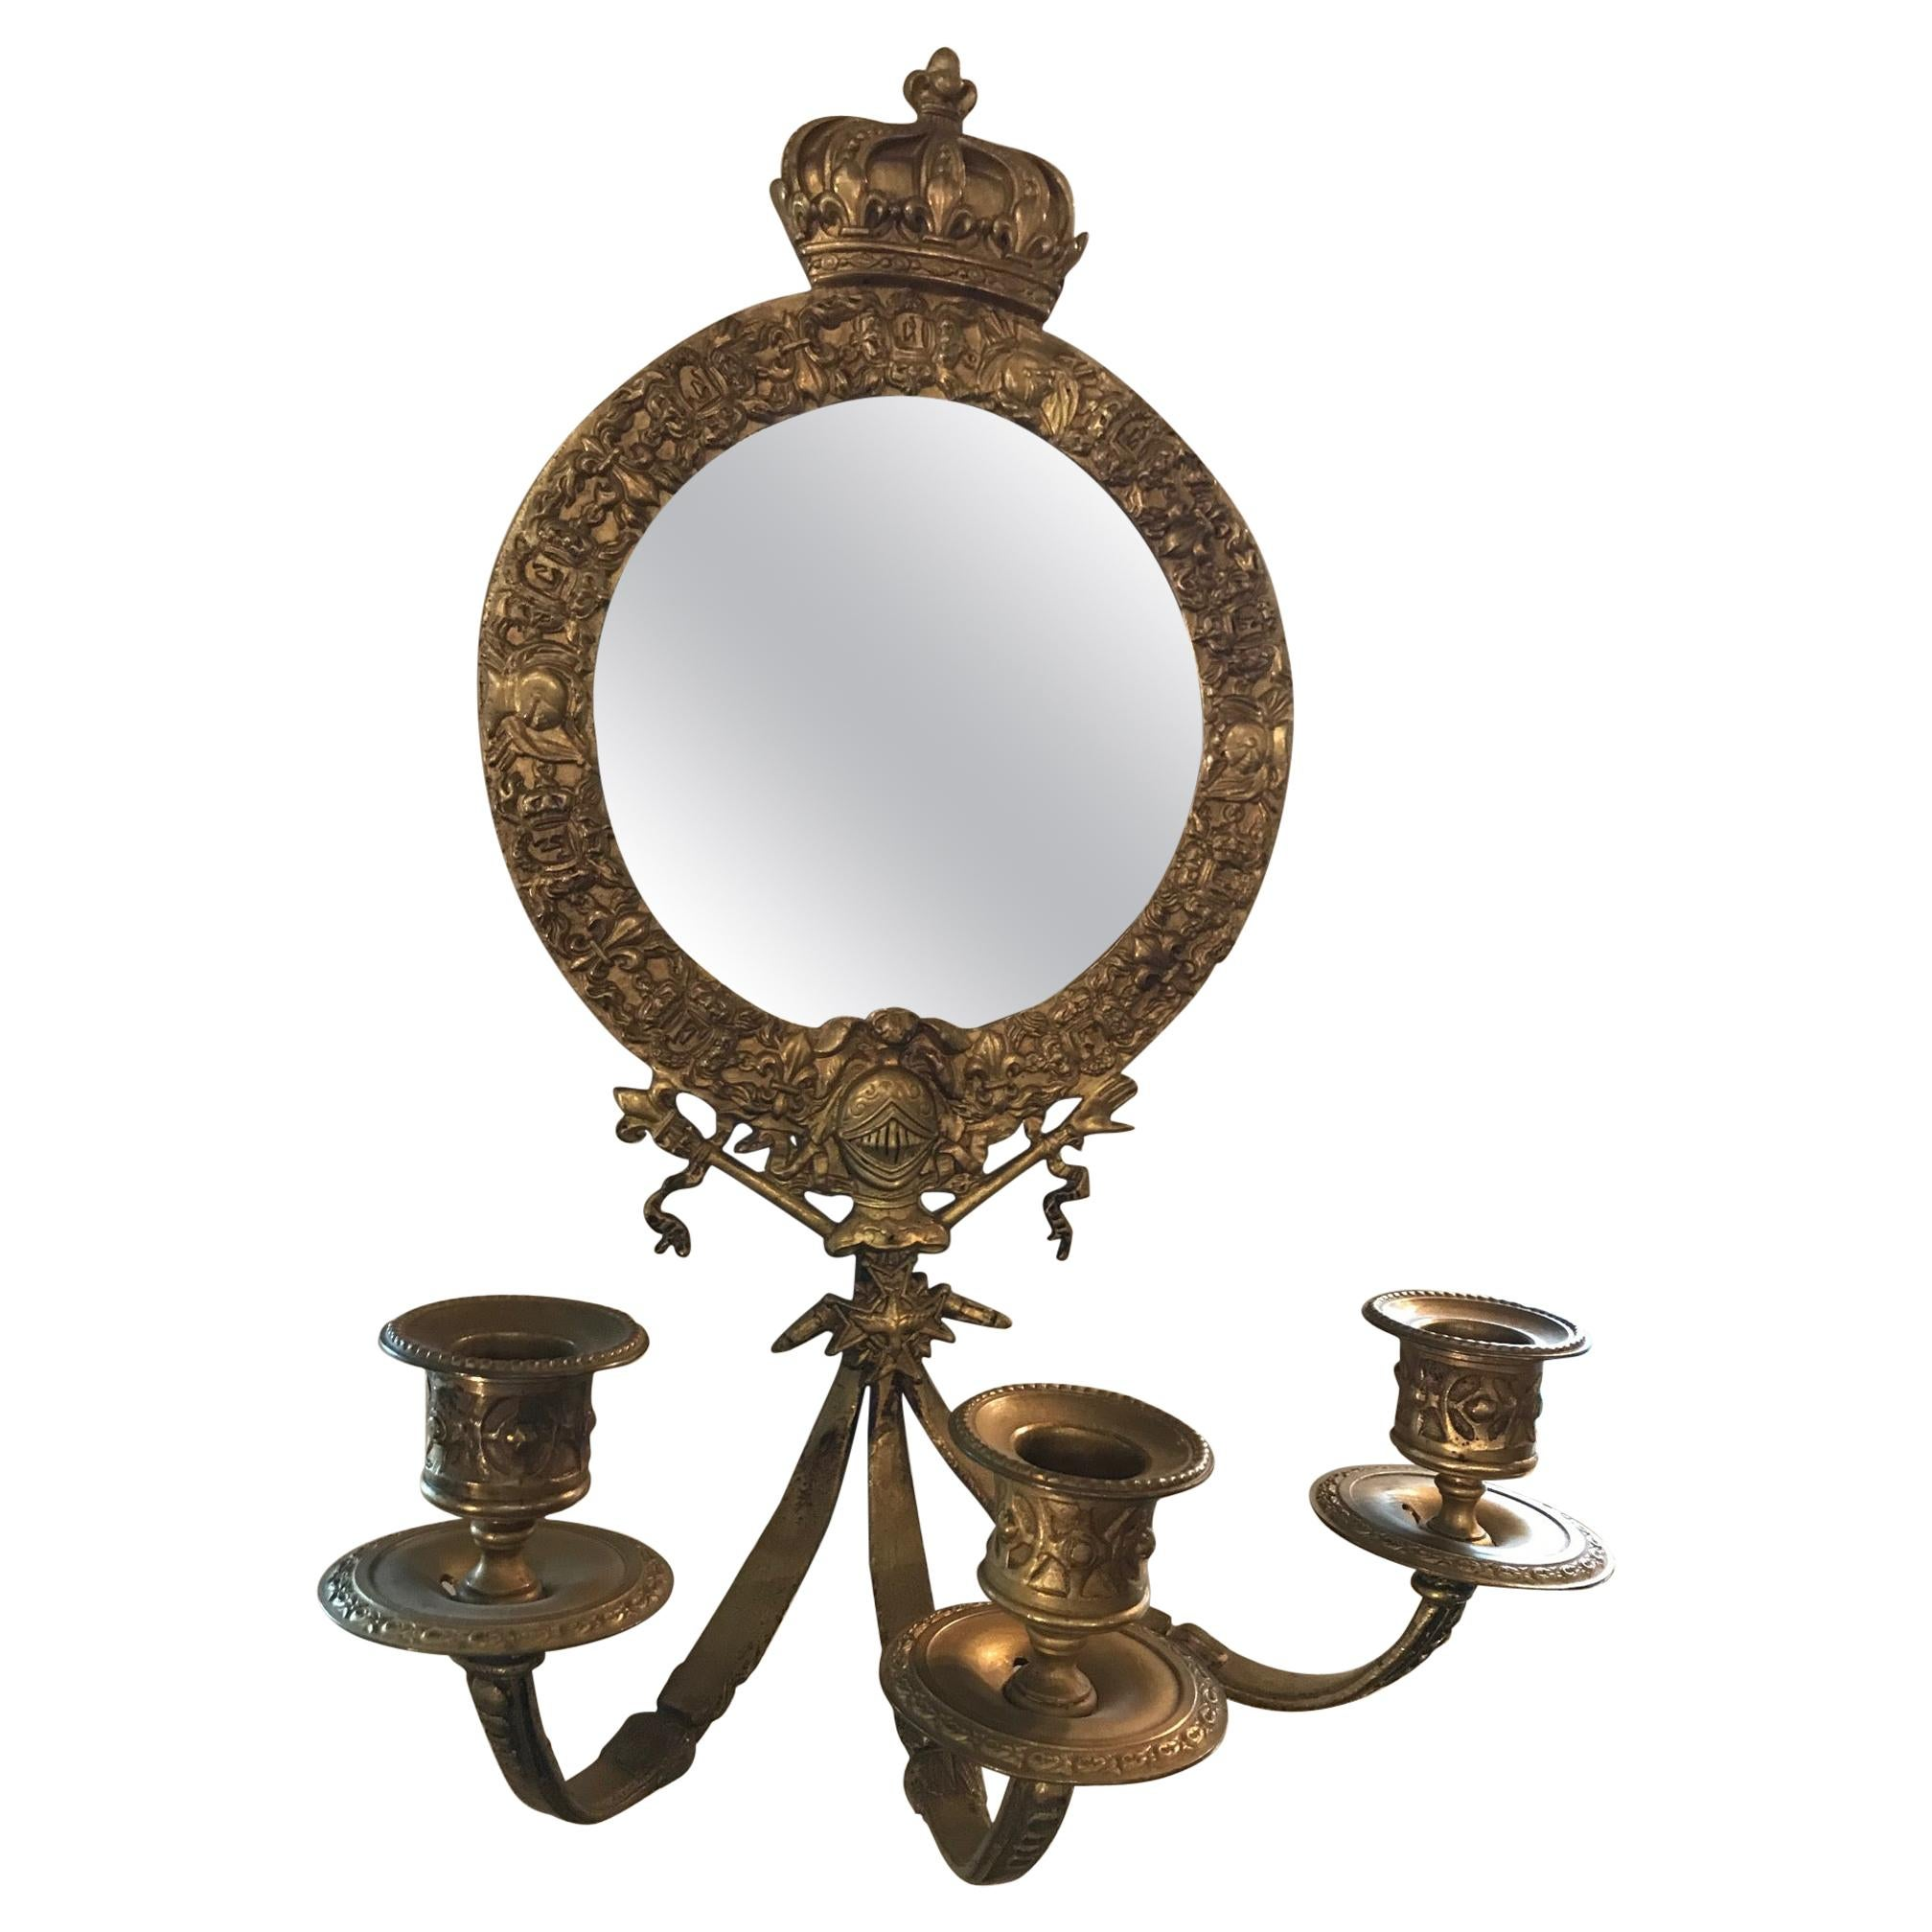 19th Century French Bronze Crown Mirror Candle Sconce